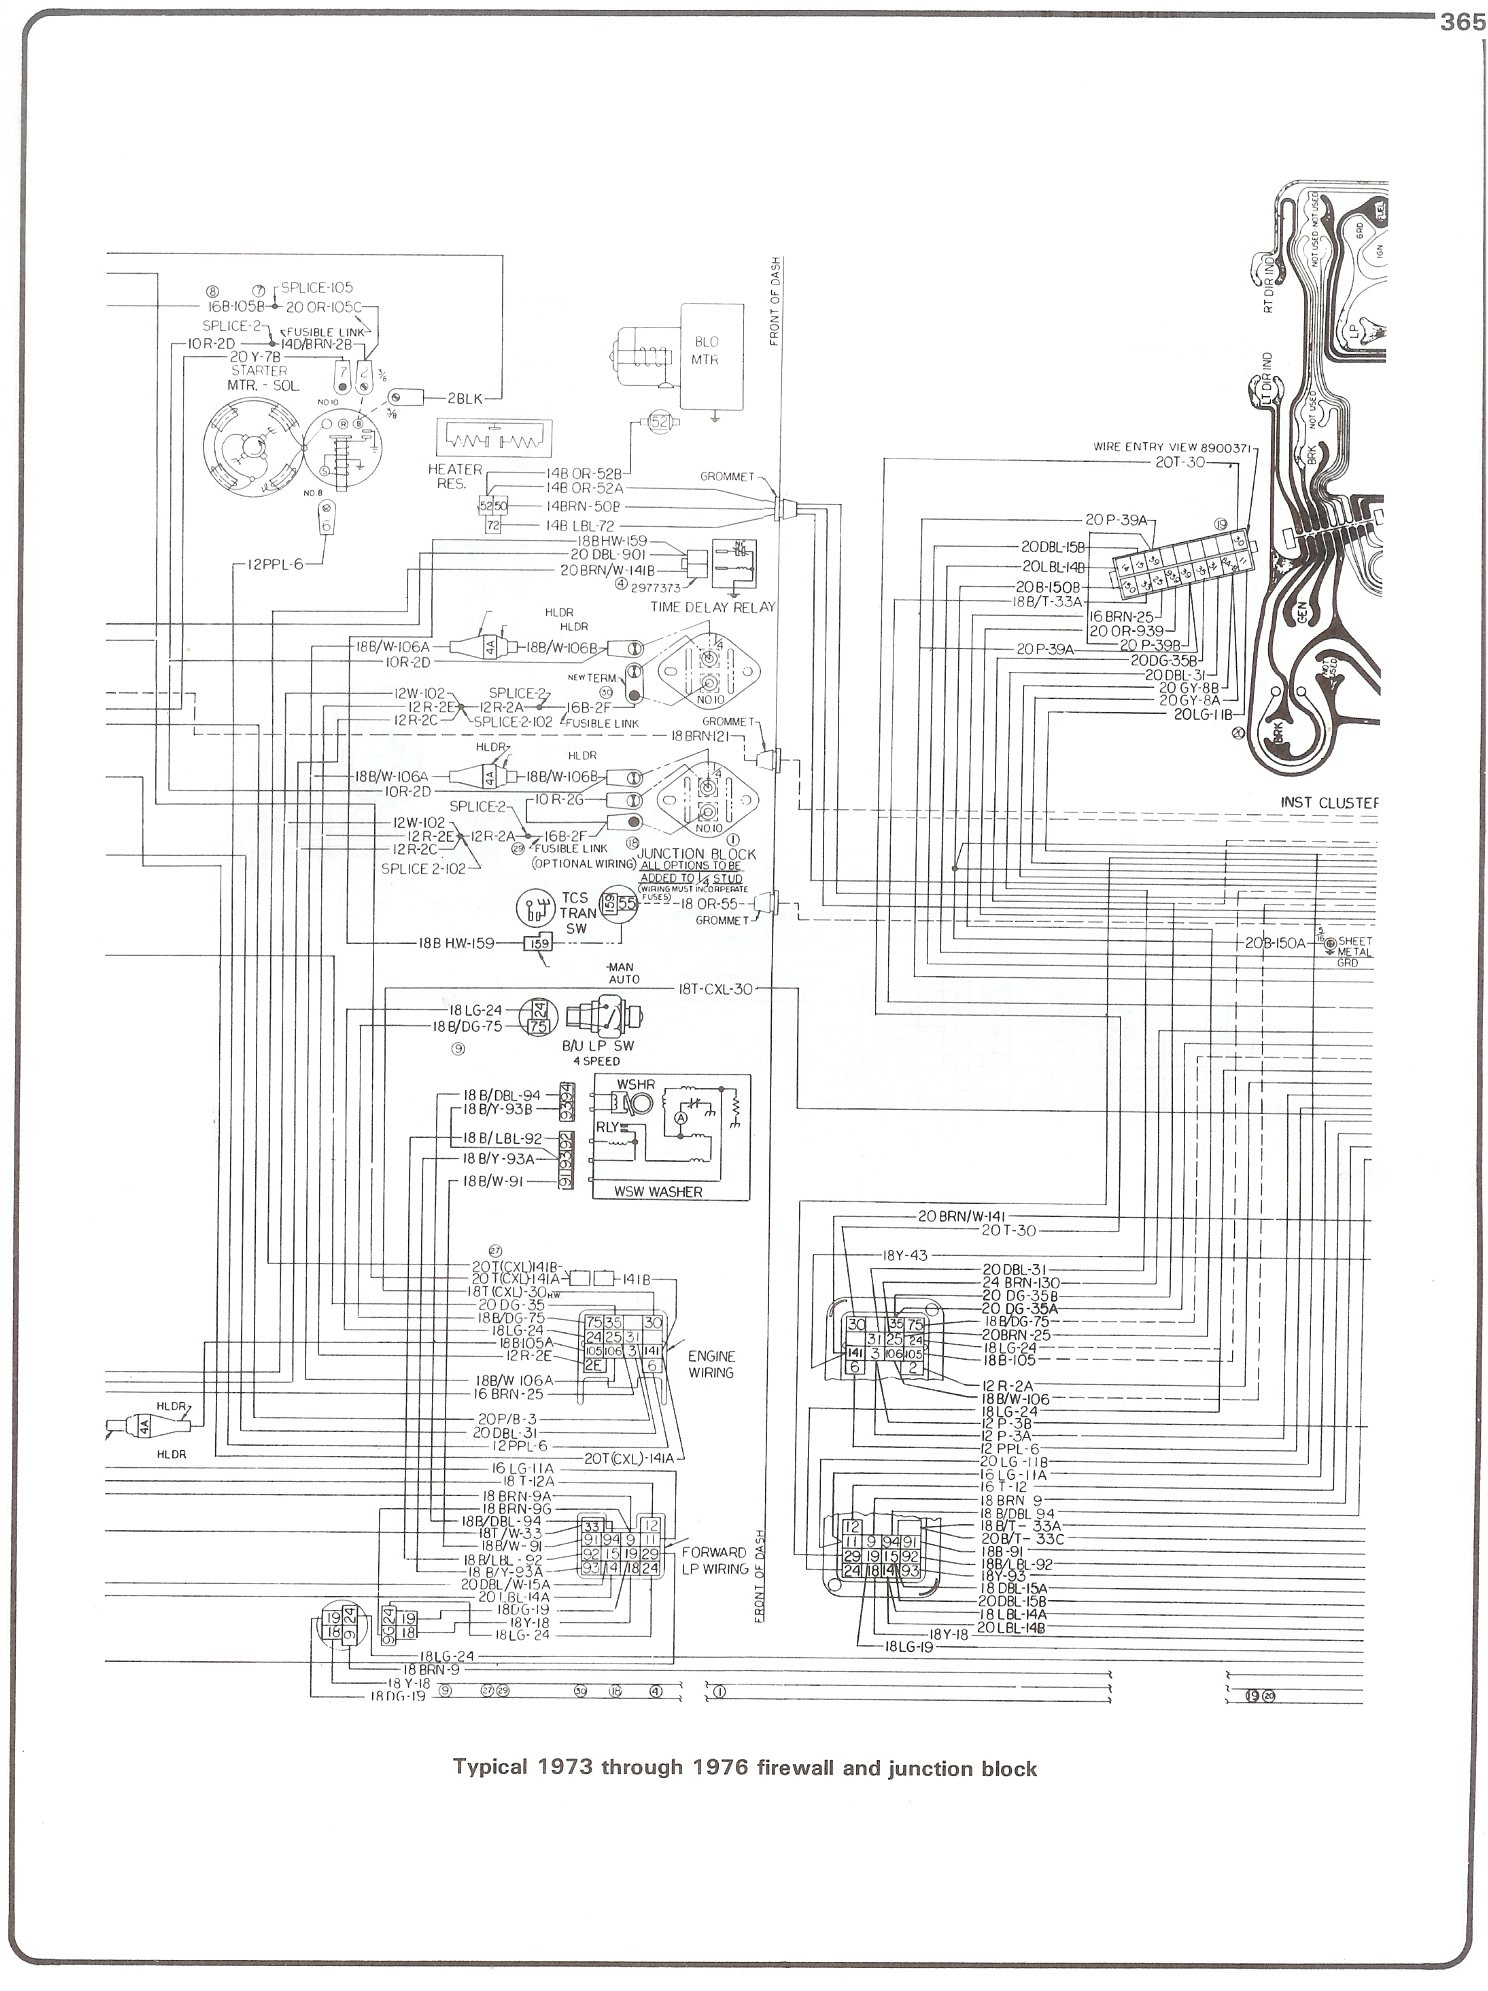 84 K10 Wiring Diagram | Online Wiring Diagram  Dodge Ram Wiring Diagrams on dodge ram leaking coolant, dodge ram starter diagram, dodge ram airbag light, circuit diagram, dodge wire harness diagram, dodge ram parts diagram, dodge ram distributor, 2002 dodge 3500 wire diagram, dodge ram transmission identification, dodge ram radio diagram, dodge ram body diagram, dodge ram infinity system, 2002 dodge ram diagram, dodge ram control panel, dodge ram interior diagram, dodge ram headlight diagram, dodge ram wire harness, 2001 dodge ram electrical diagram, dodge ram tail light wiring, dodge ram 1500 diagram,